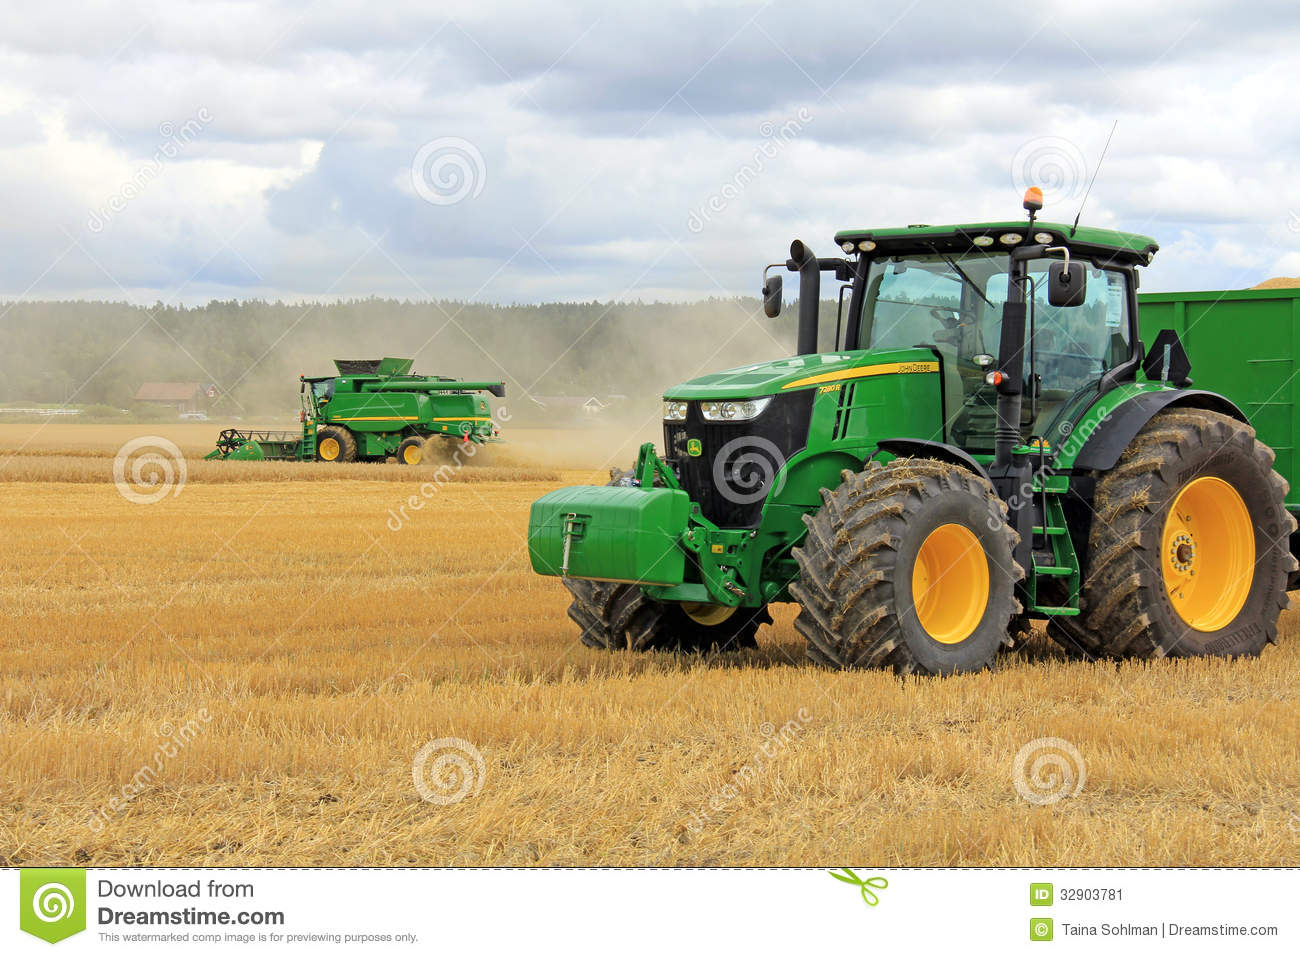 John Deere 7280R Agricultural Tractor And T560 Combine Harvester ...